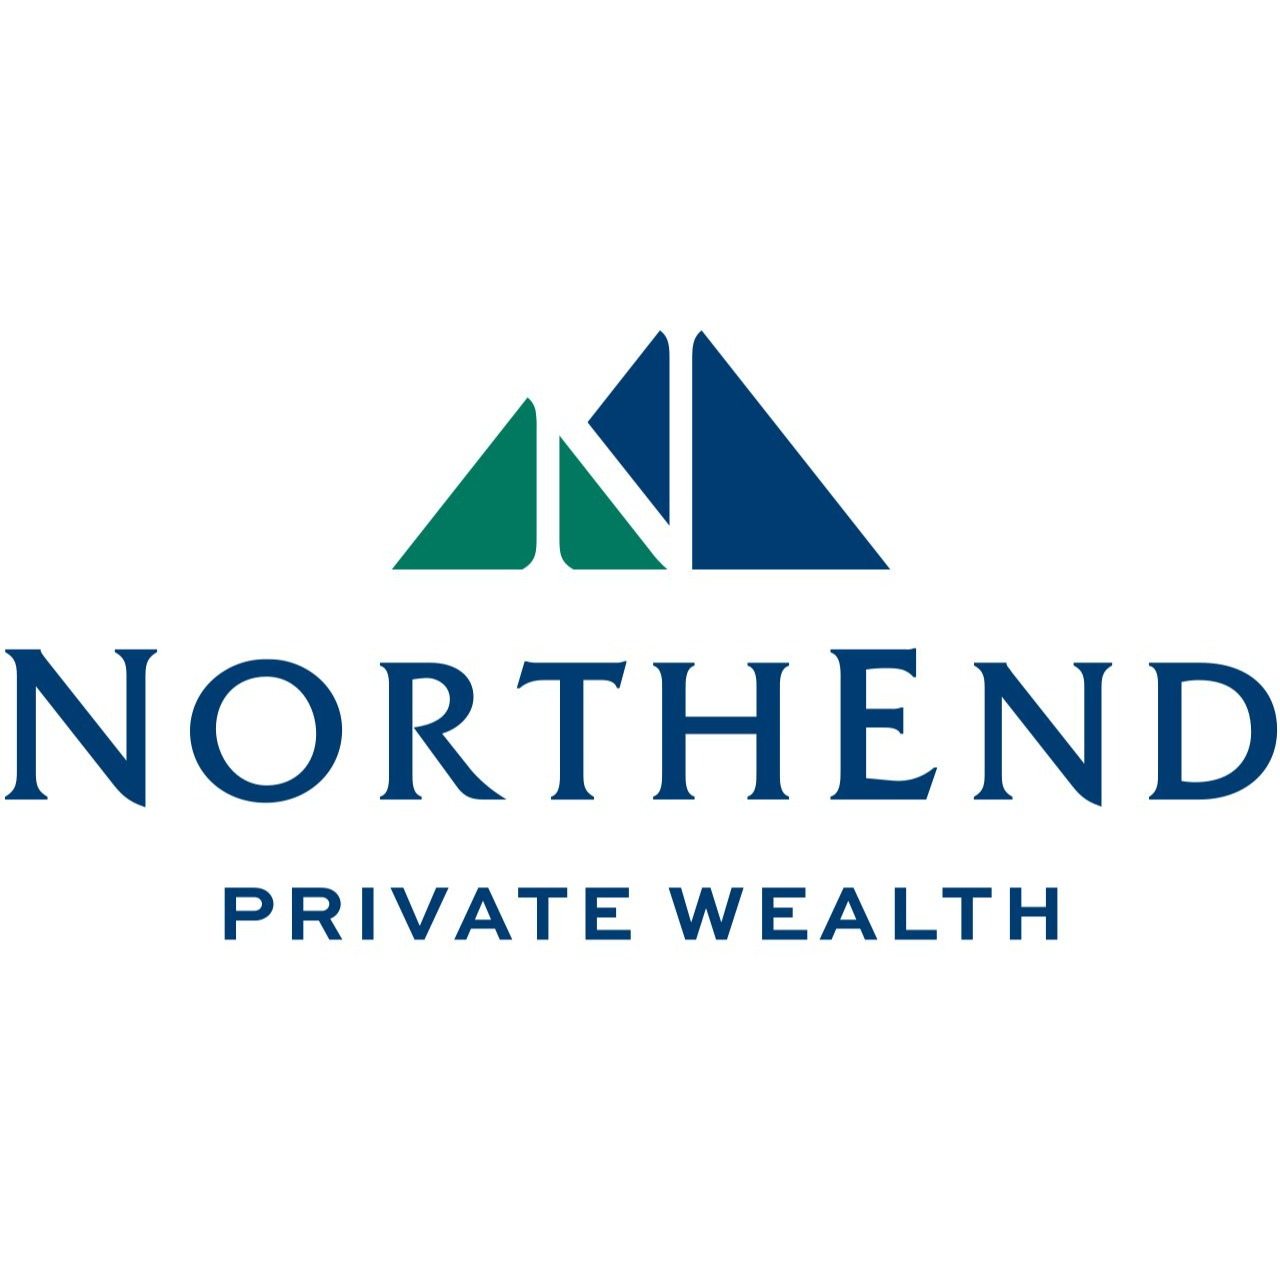 NorthEnd Private Wealth